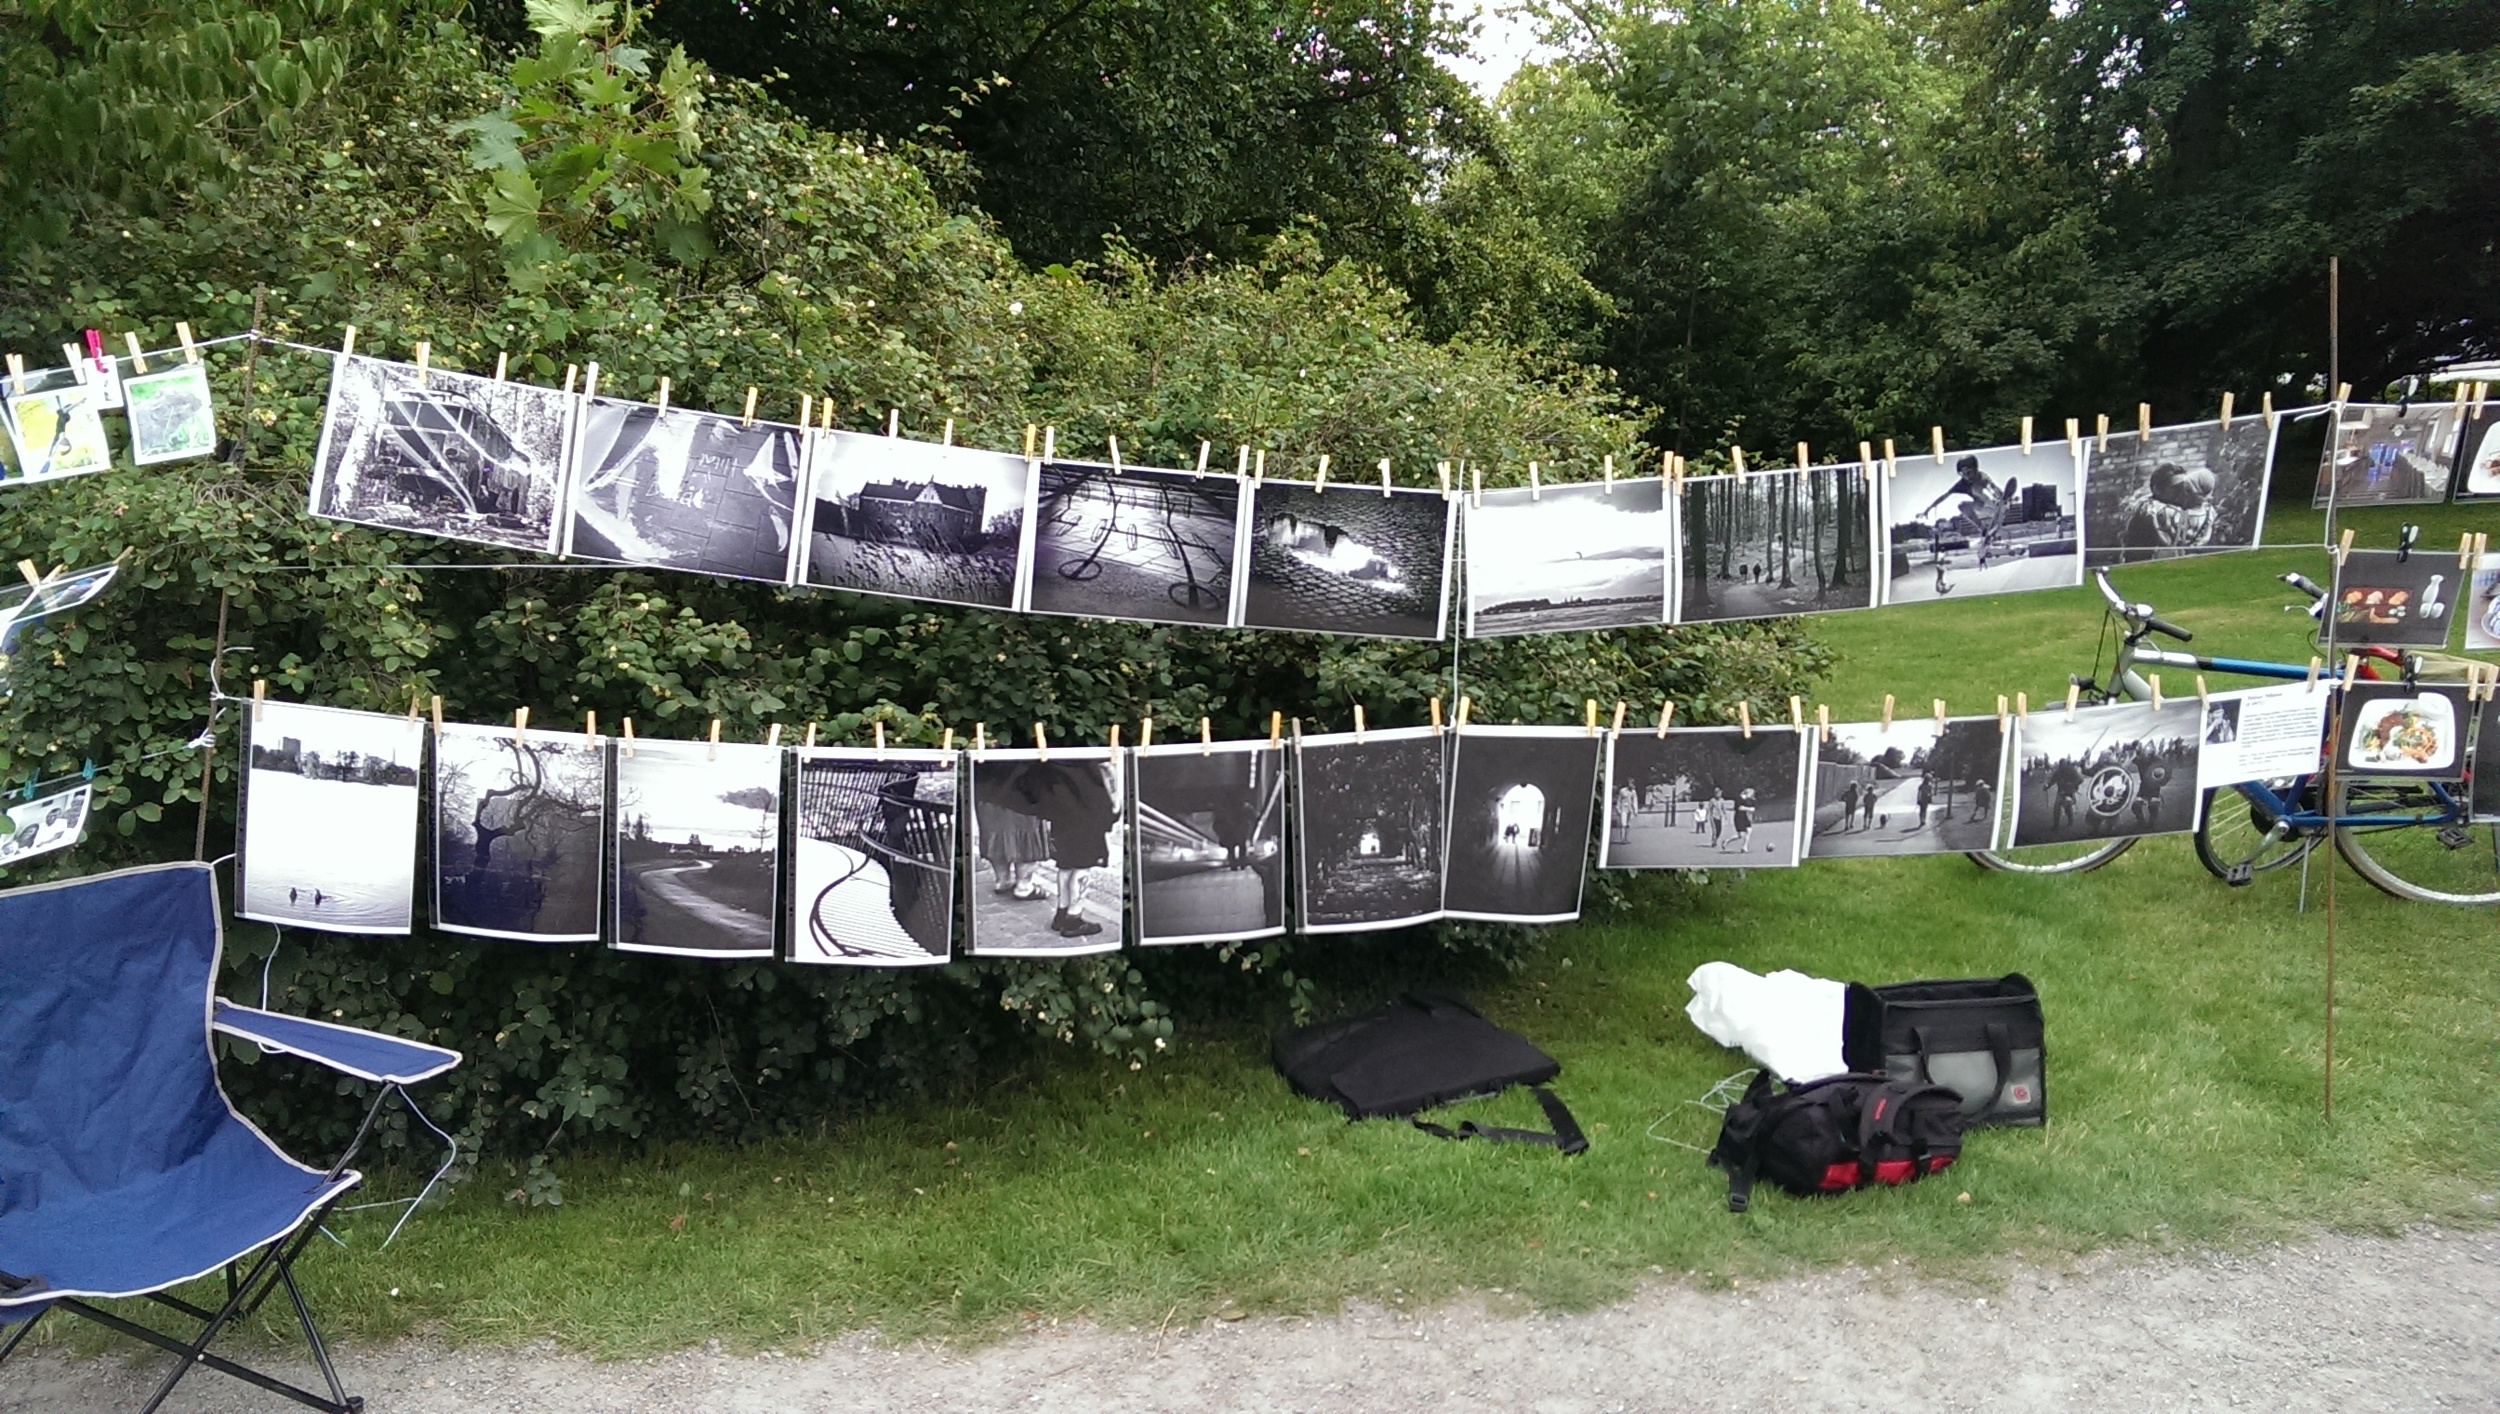 My twenty black and white prints at the Linan 2014 event